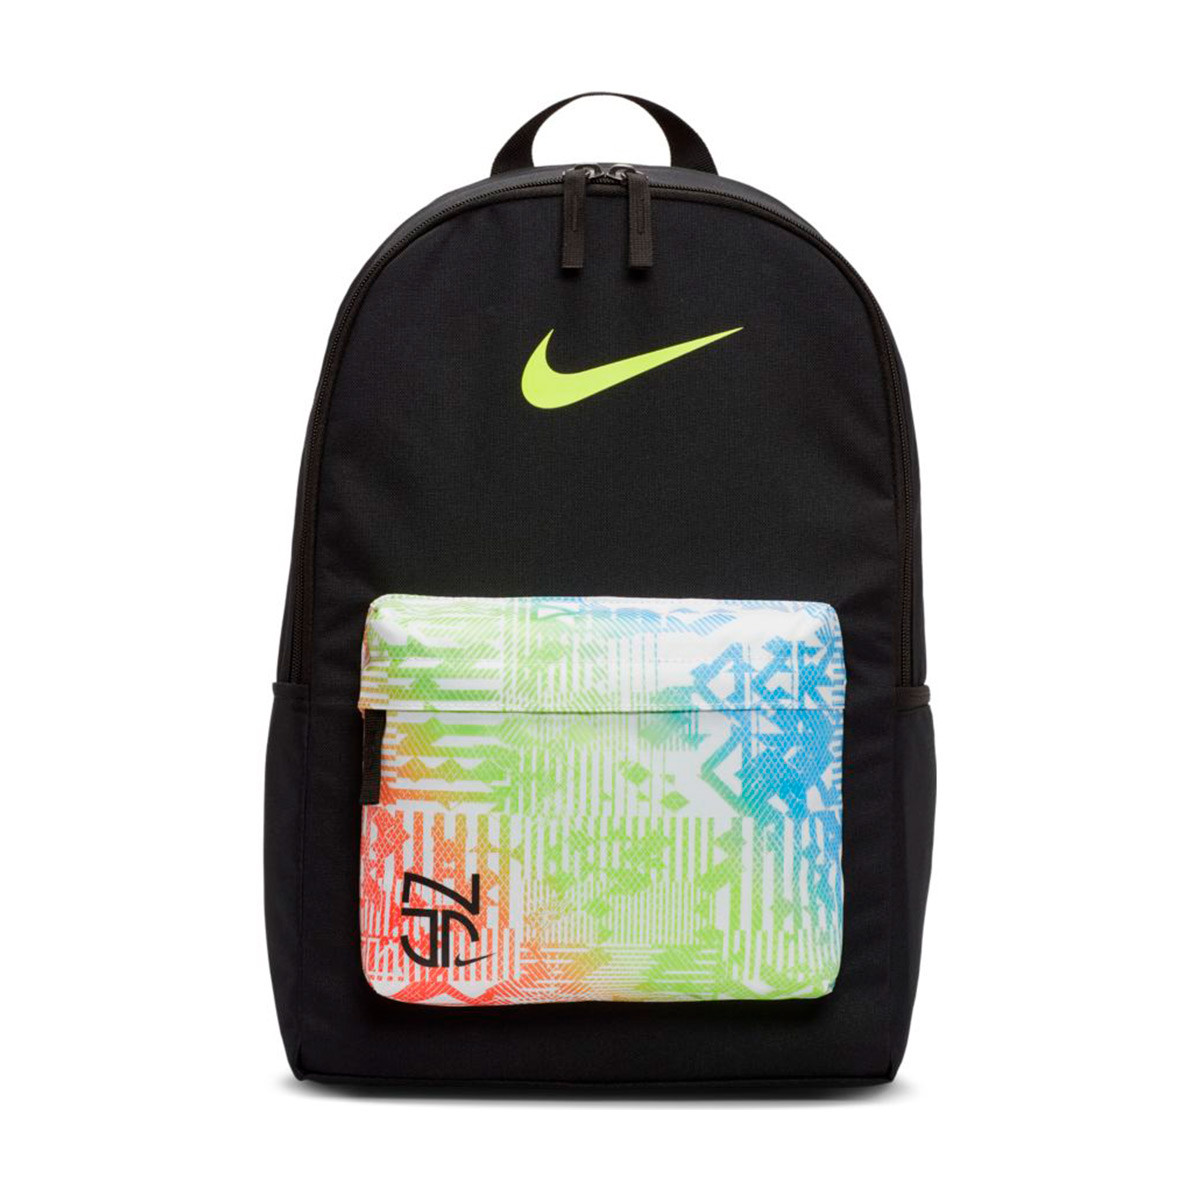 Composición Vacío Llave  Backpack Nike Kids Neymar Jr Black-Volt - Football store Fútbol Emotion